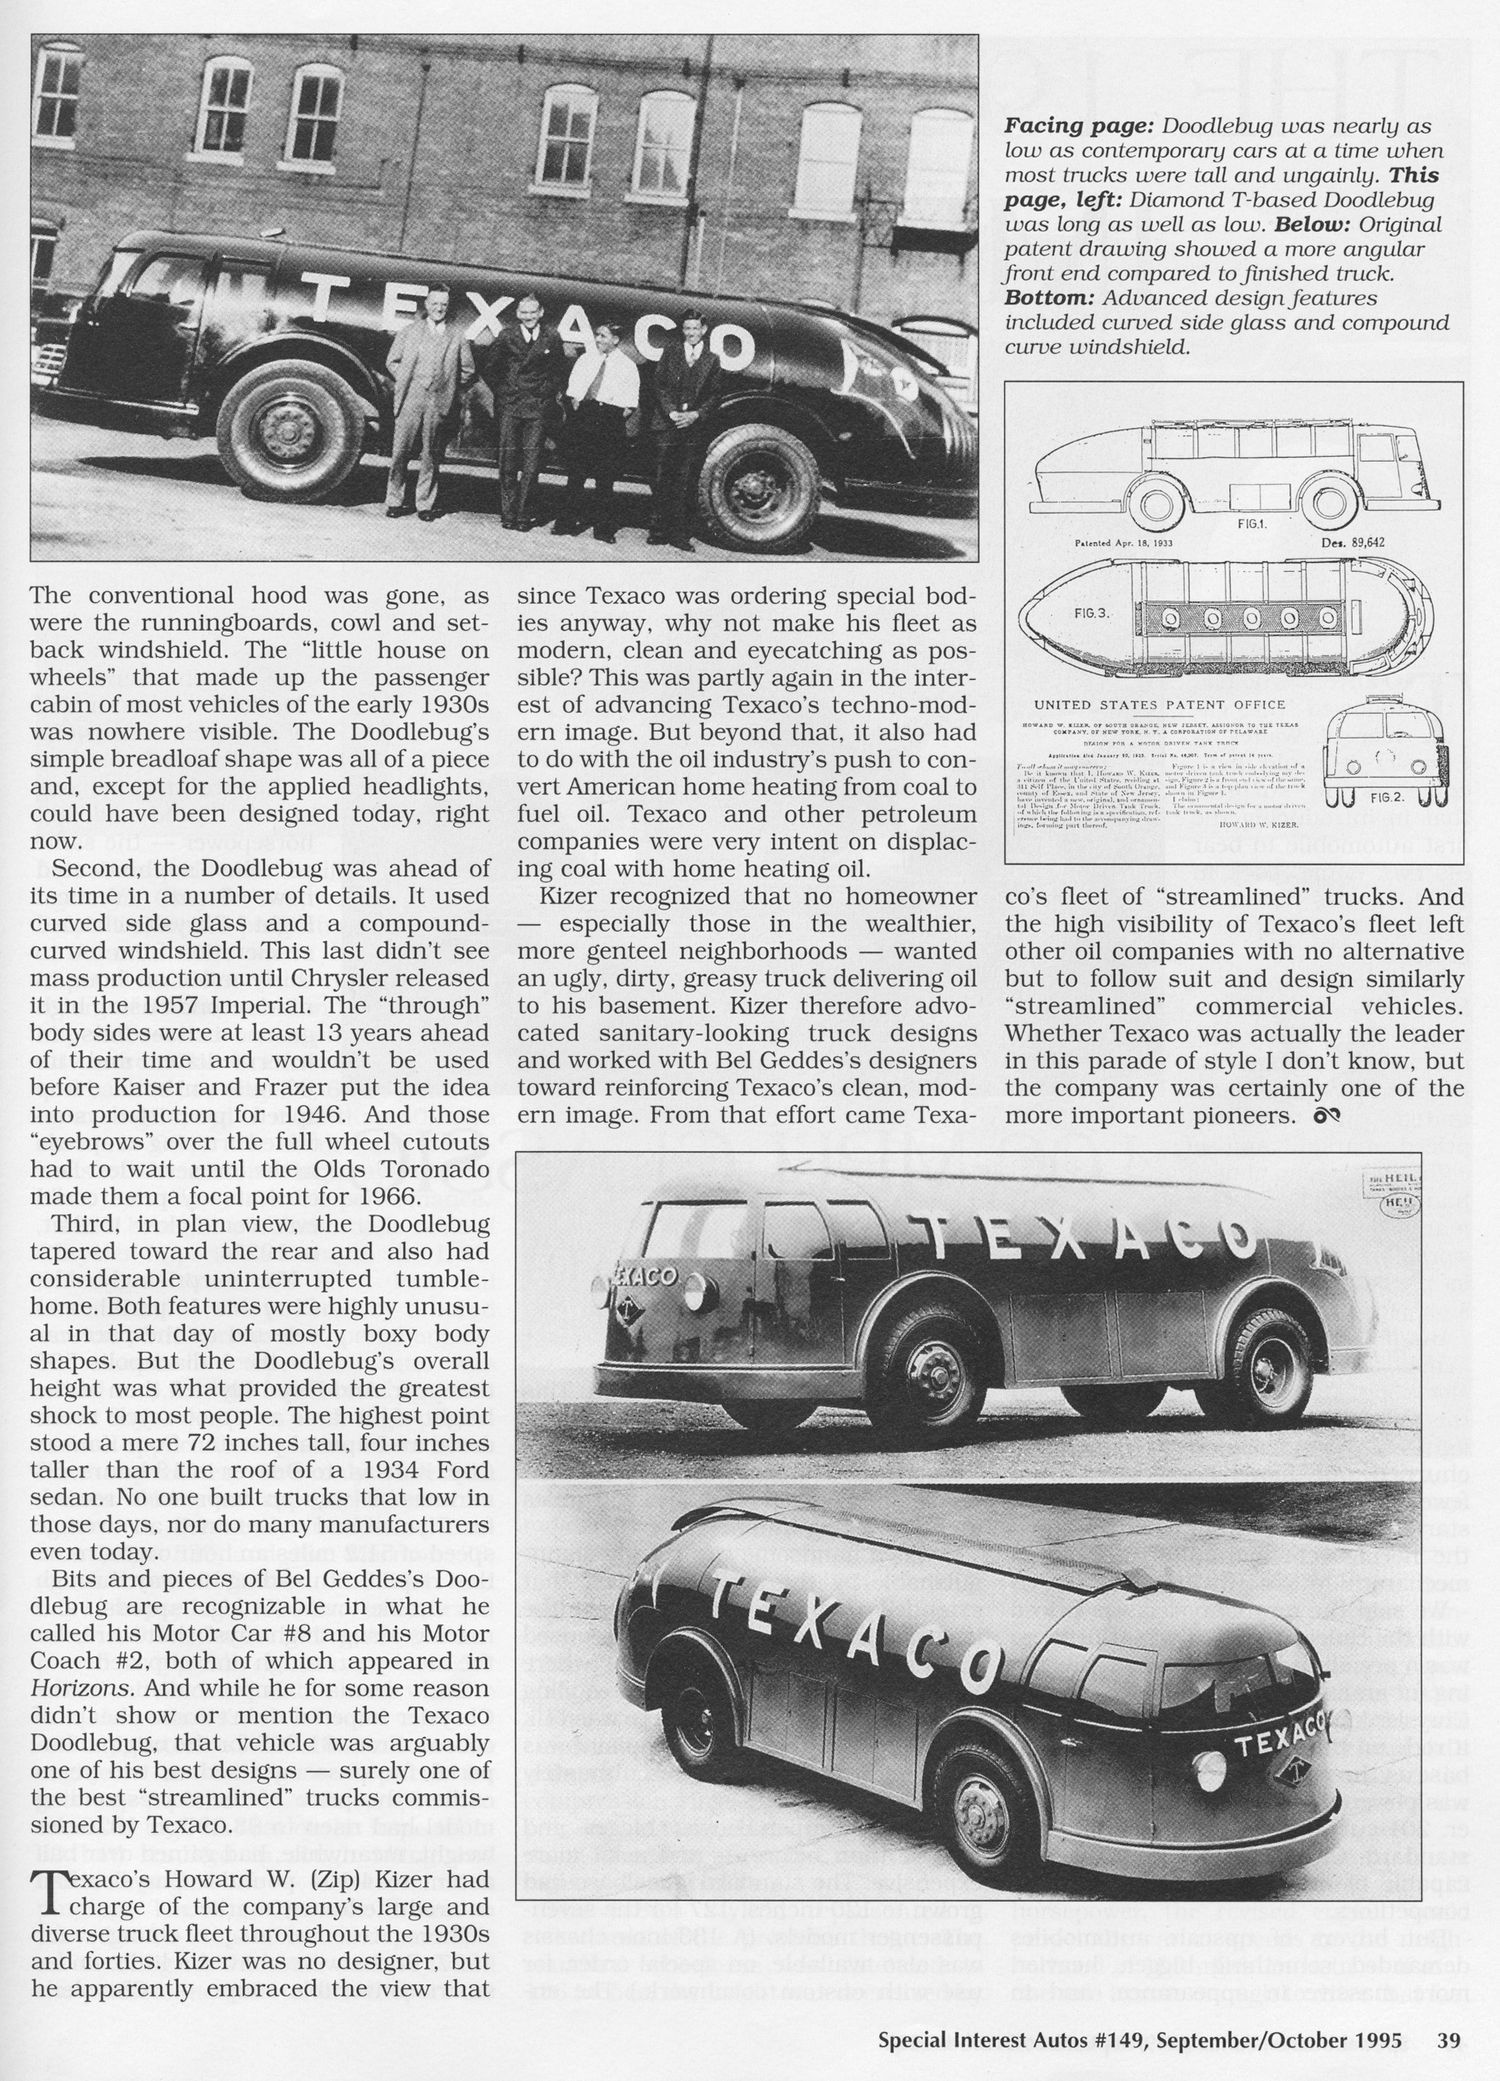 Hemmings | Commercial Vehicles | Pinterest | Texaco, Vehicle and ...